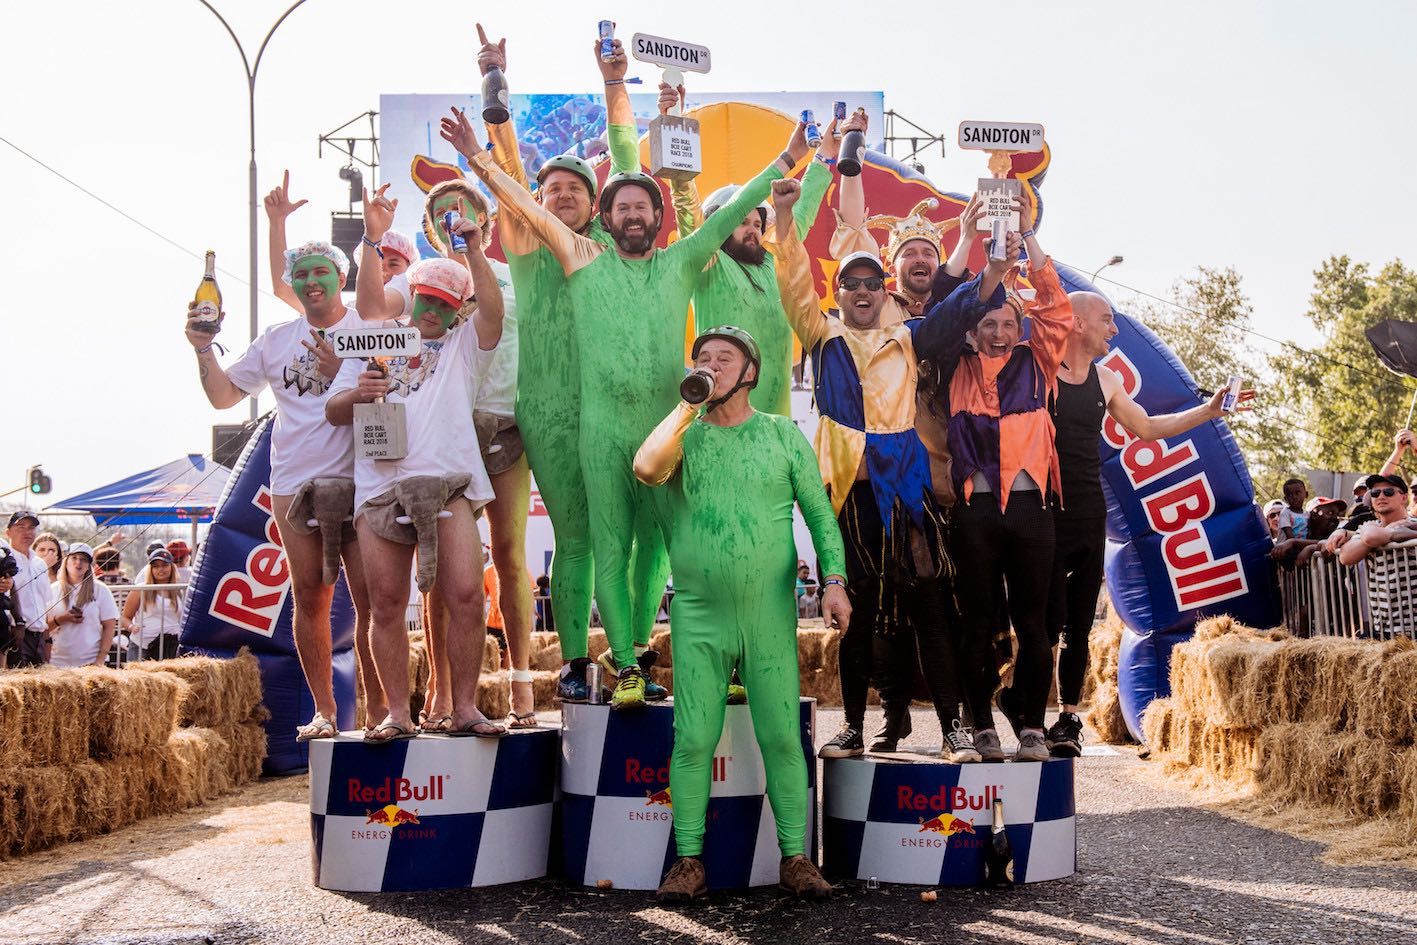 Red Bull Box Cart Race 2018 podium winners